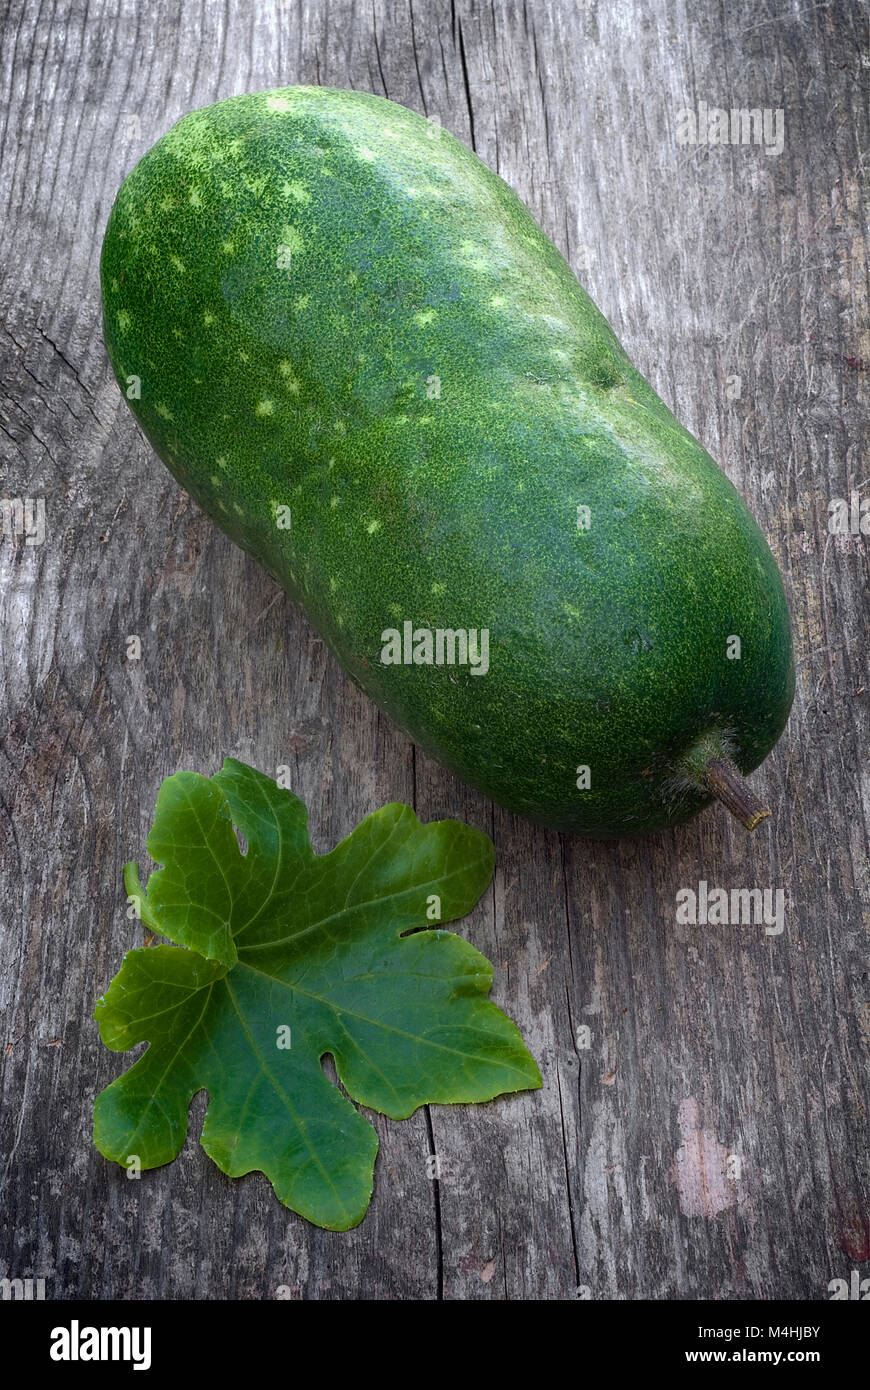 Asian Winter Gourd A Rare /& Delicious Gourd//Melon from South-east Asia